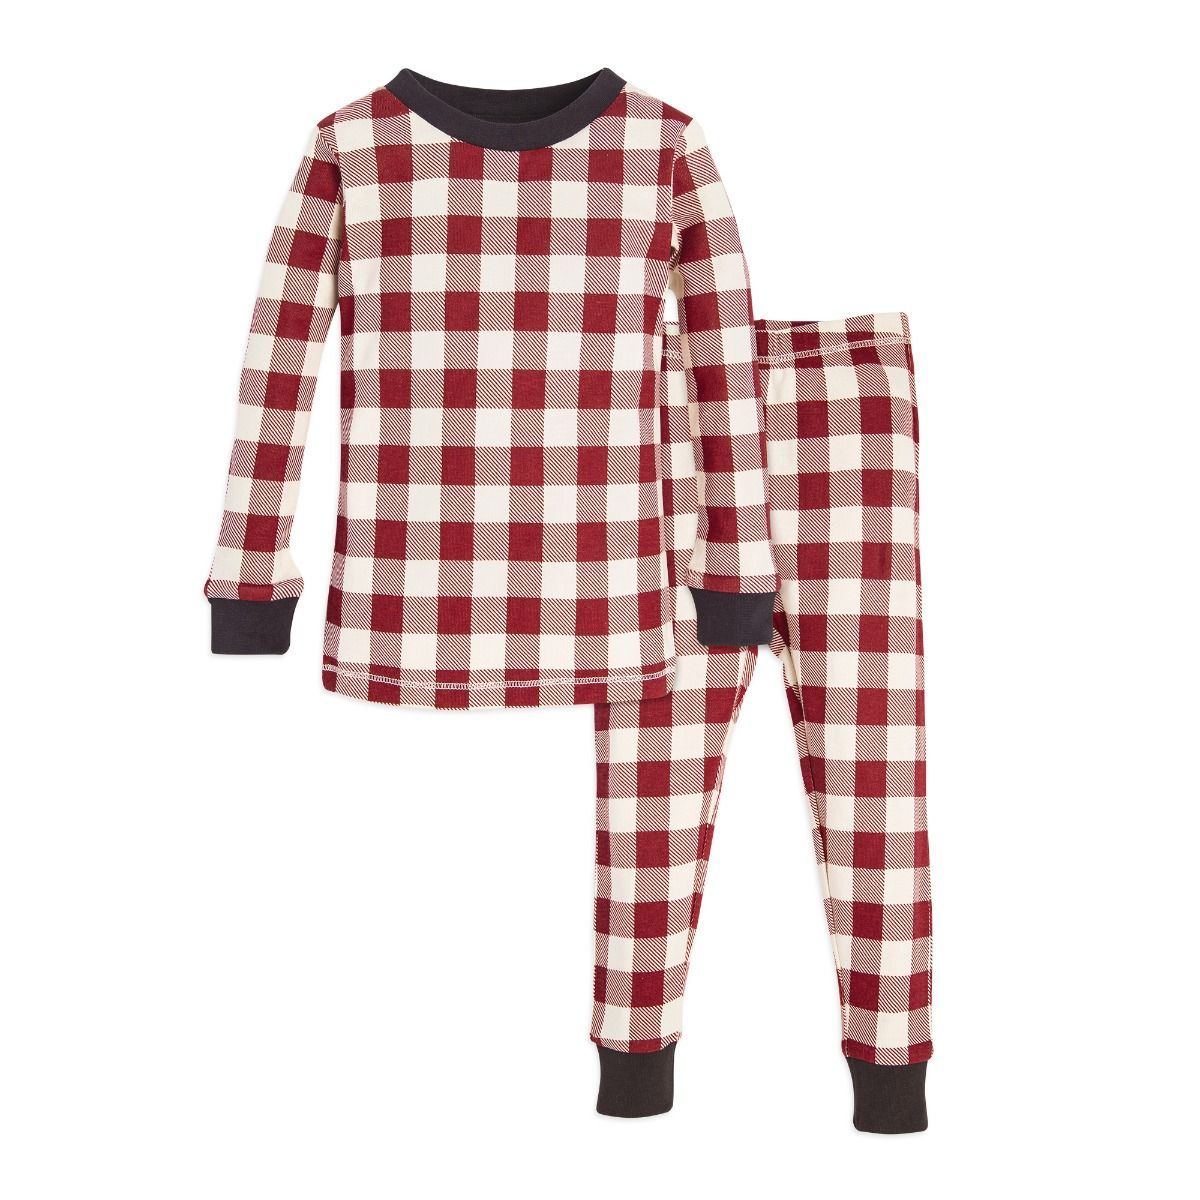 Simple Joys by Carters Unisex Baby 2-Pack Holiday Loose Fit Flame Resistant Fleece Footed Pajamas